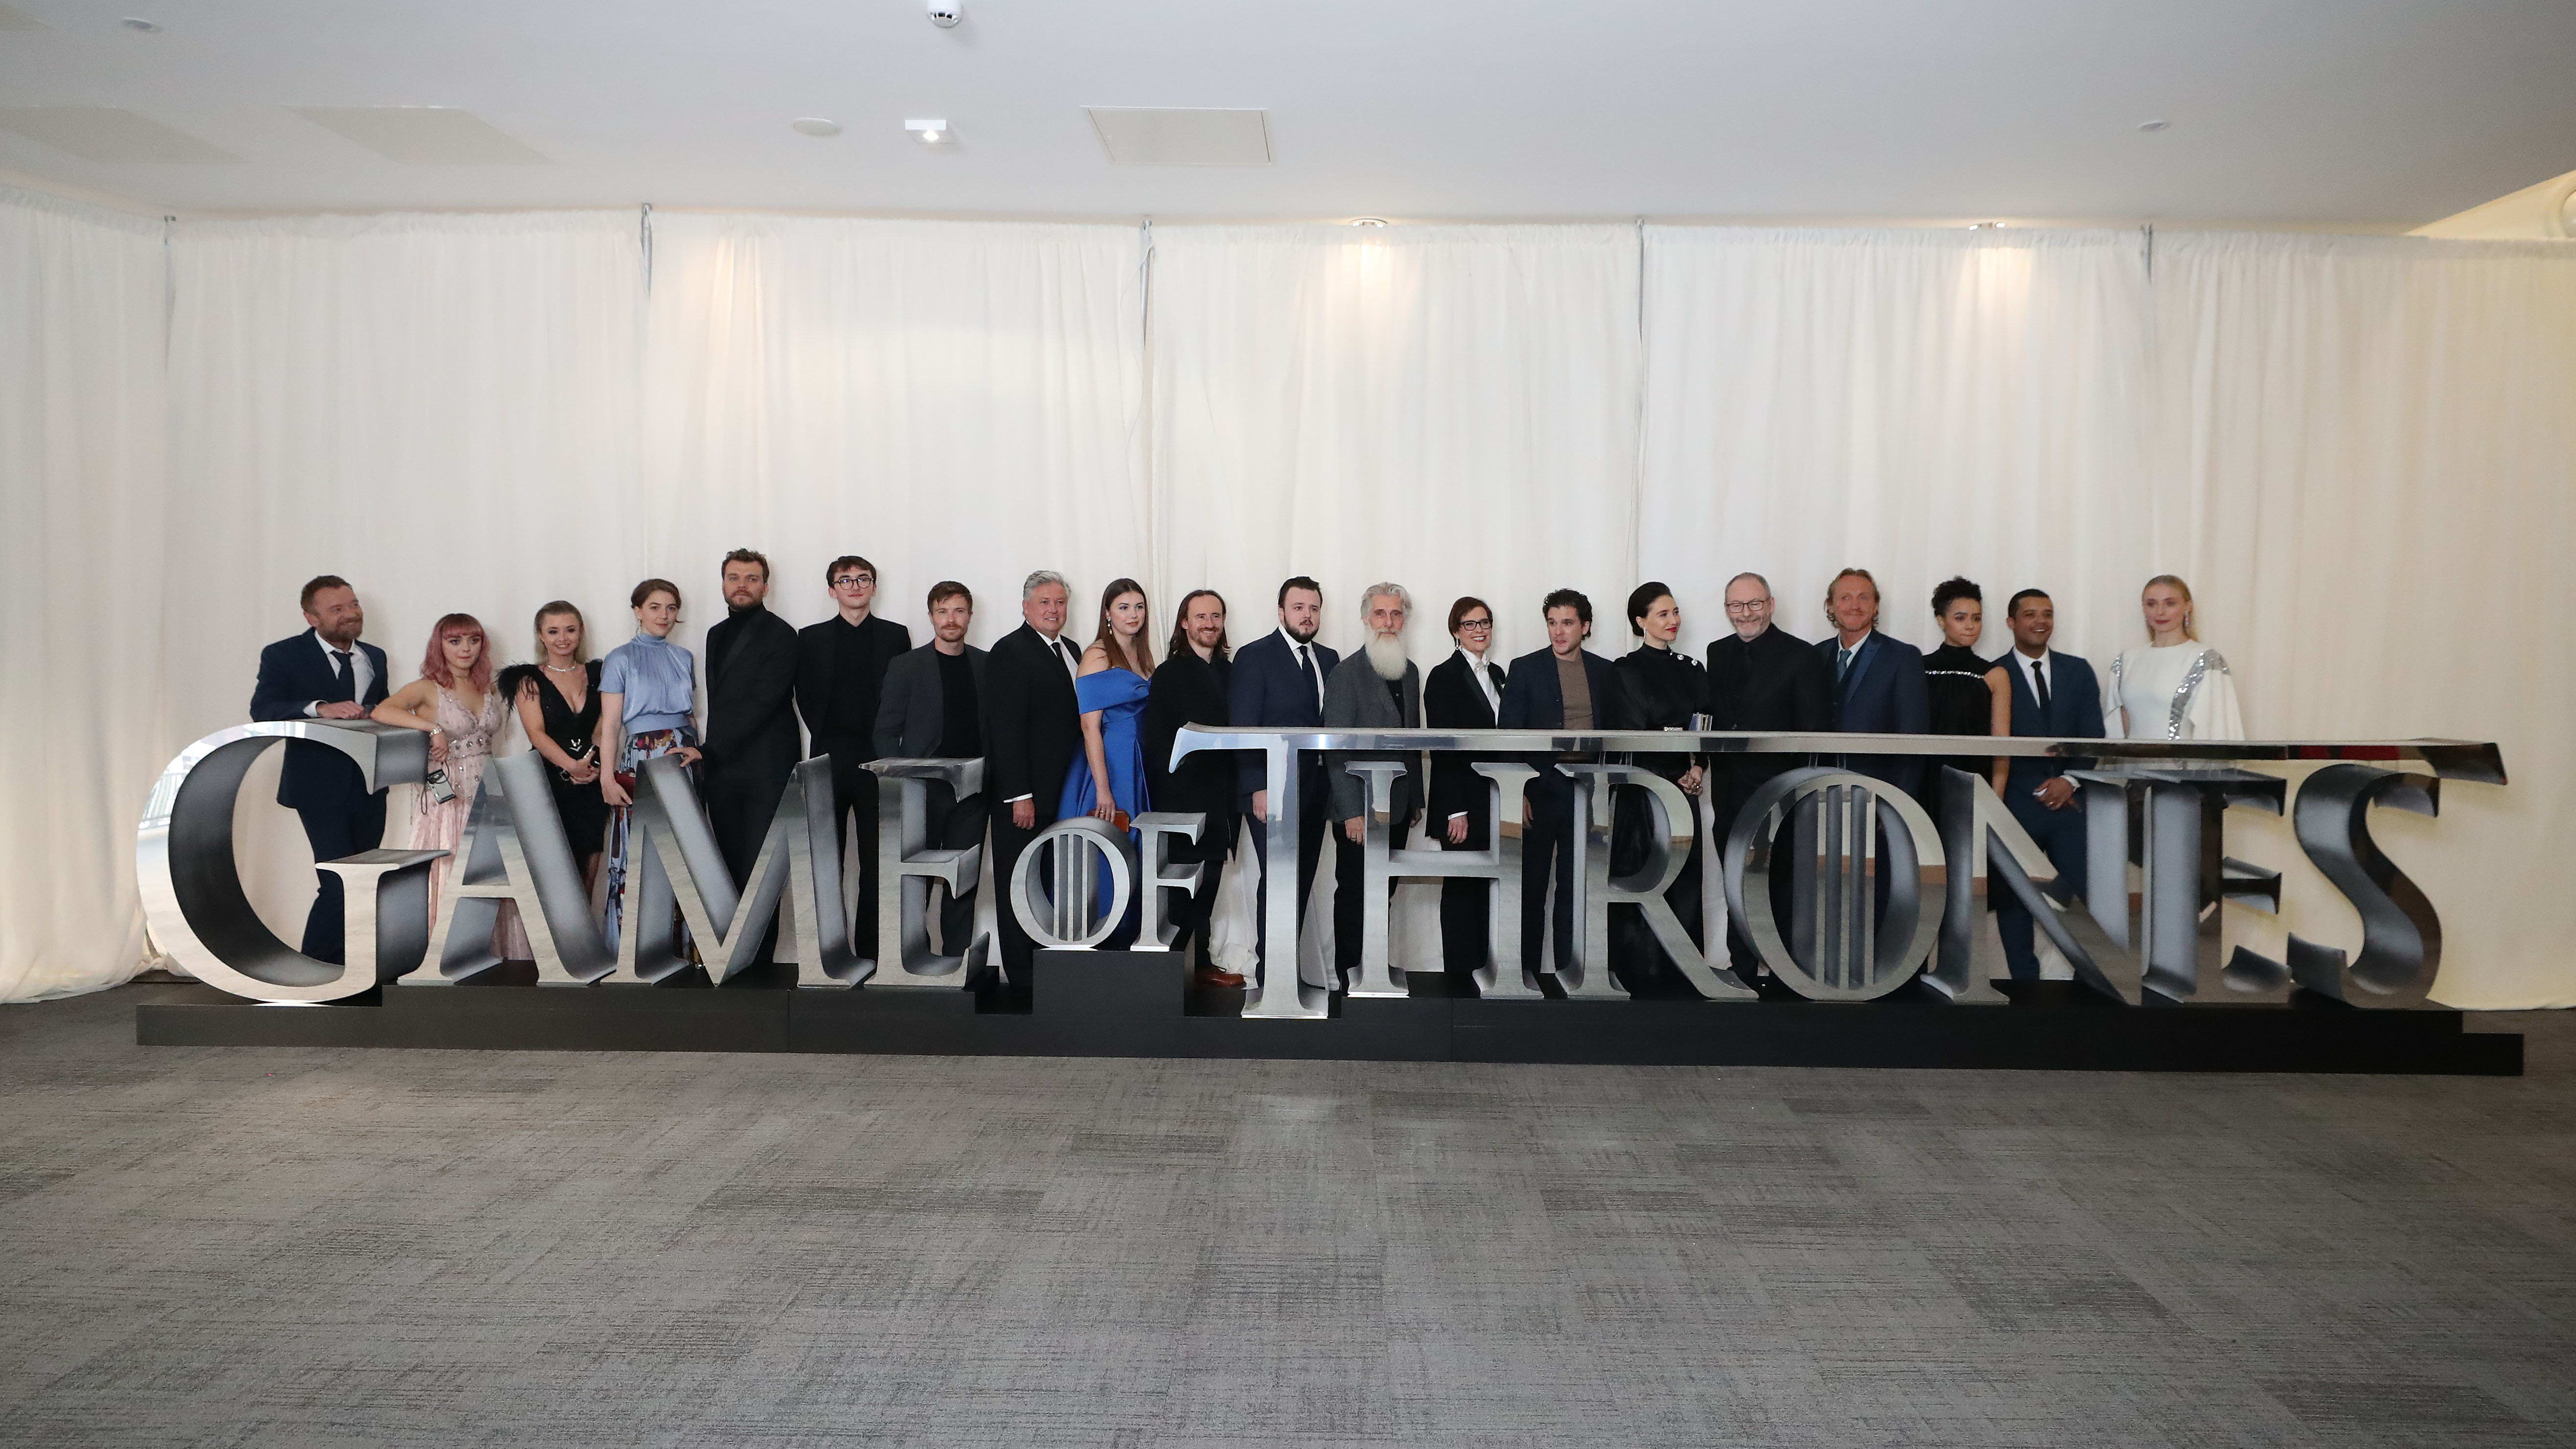 "BELFAST, NORTHERN IRELAND - APRIL 12: The cast of Game of Thrones attend the ""Game of Thrones"" Season 8 premiere screening at Waterfront Hall on April 12, 2019 in Belfast, Northern Ireland. The first episode of the final season of the HBO series will air this weekend. (Photo by Charles McQuillan/Getty Images)"